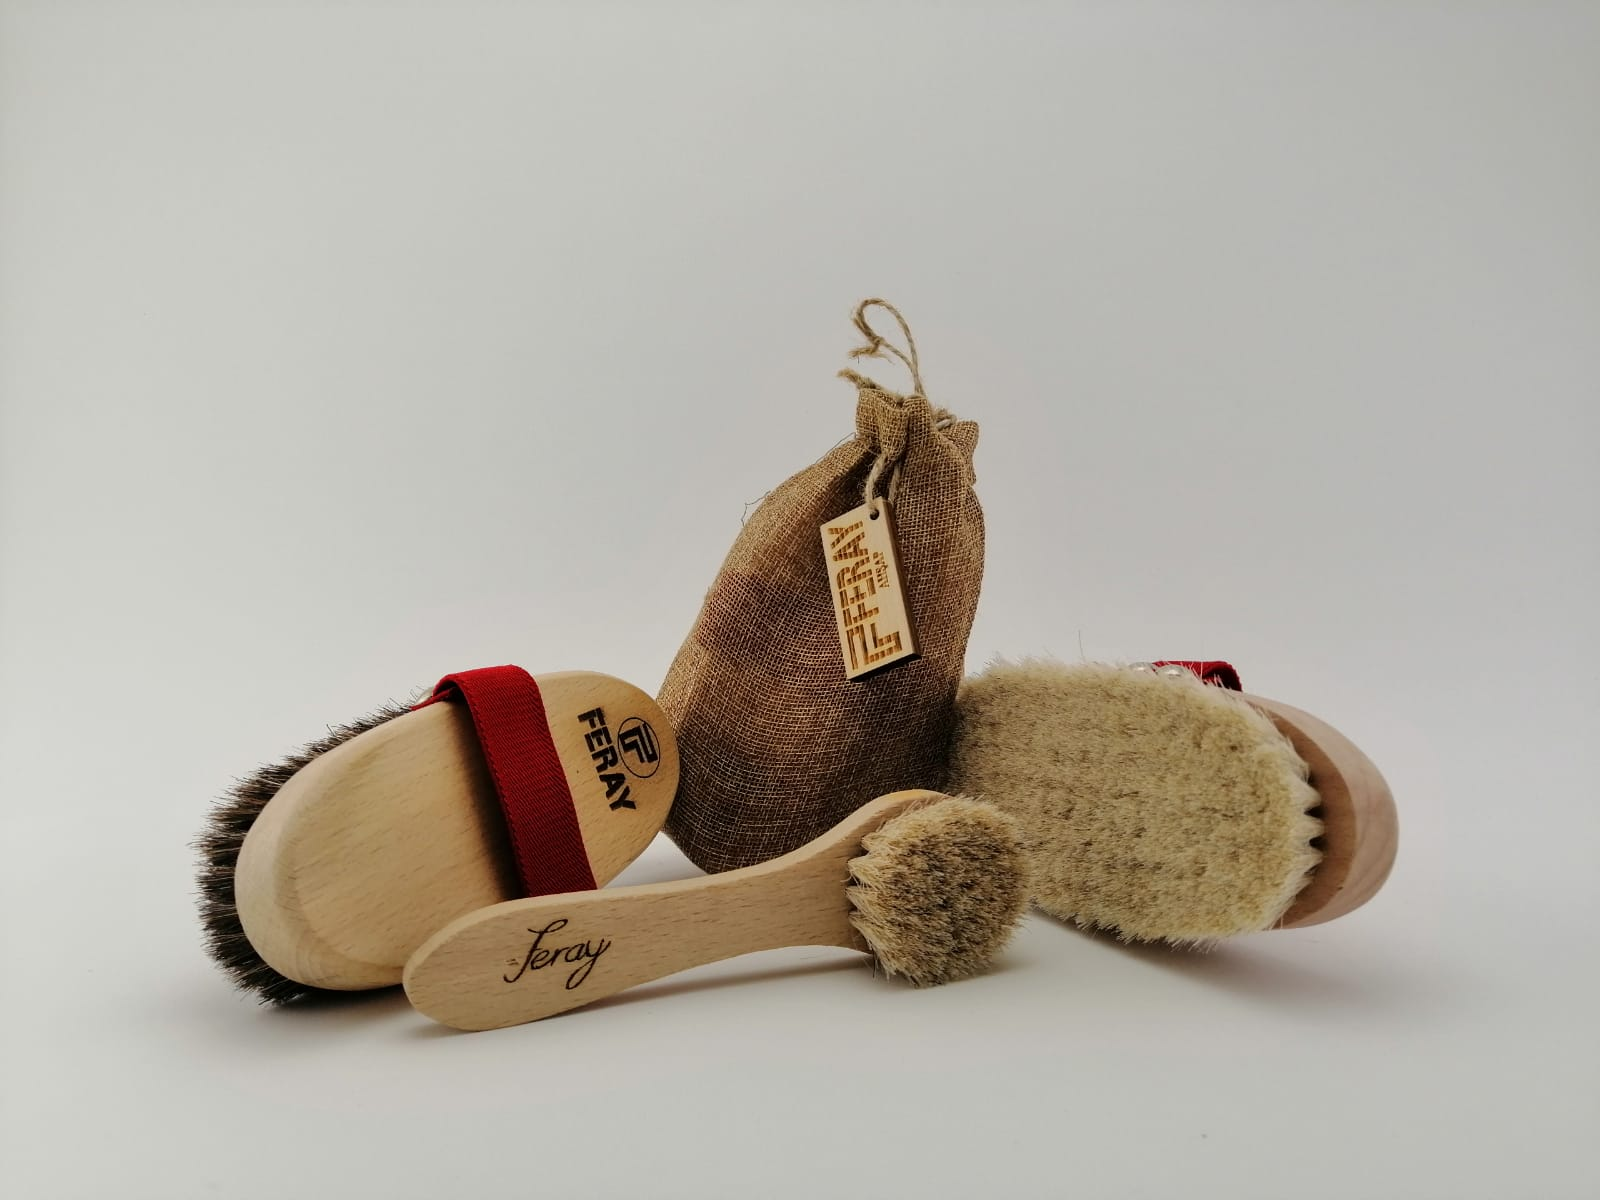 Feray natural horsehair body and face brush